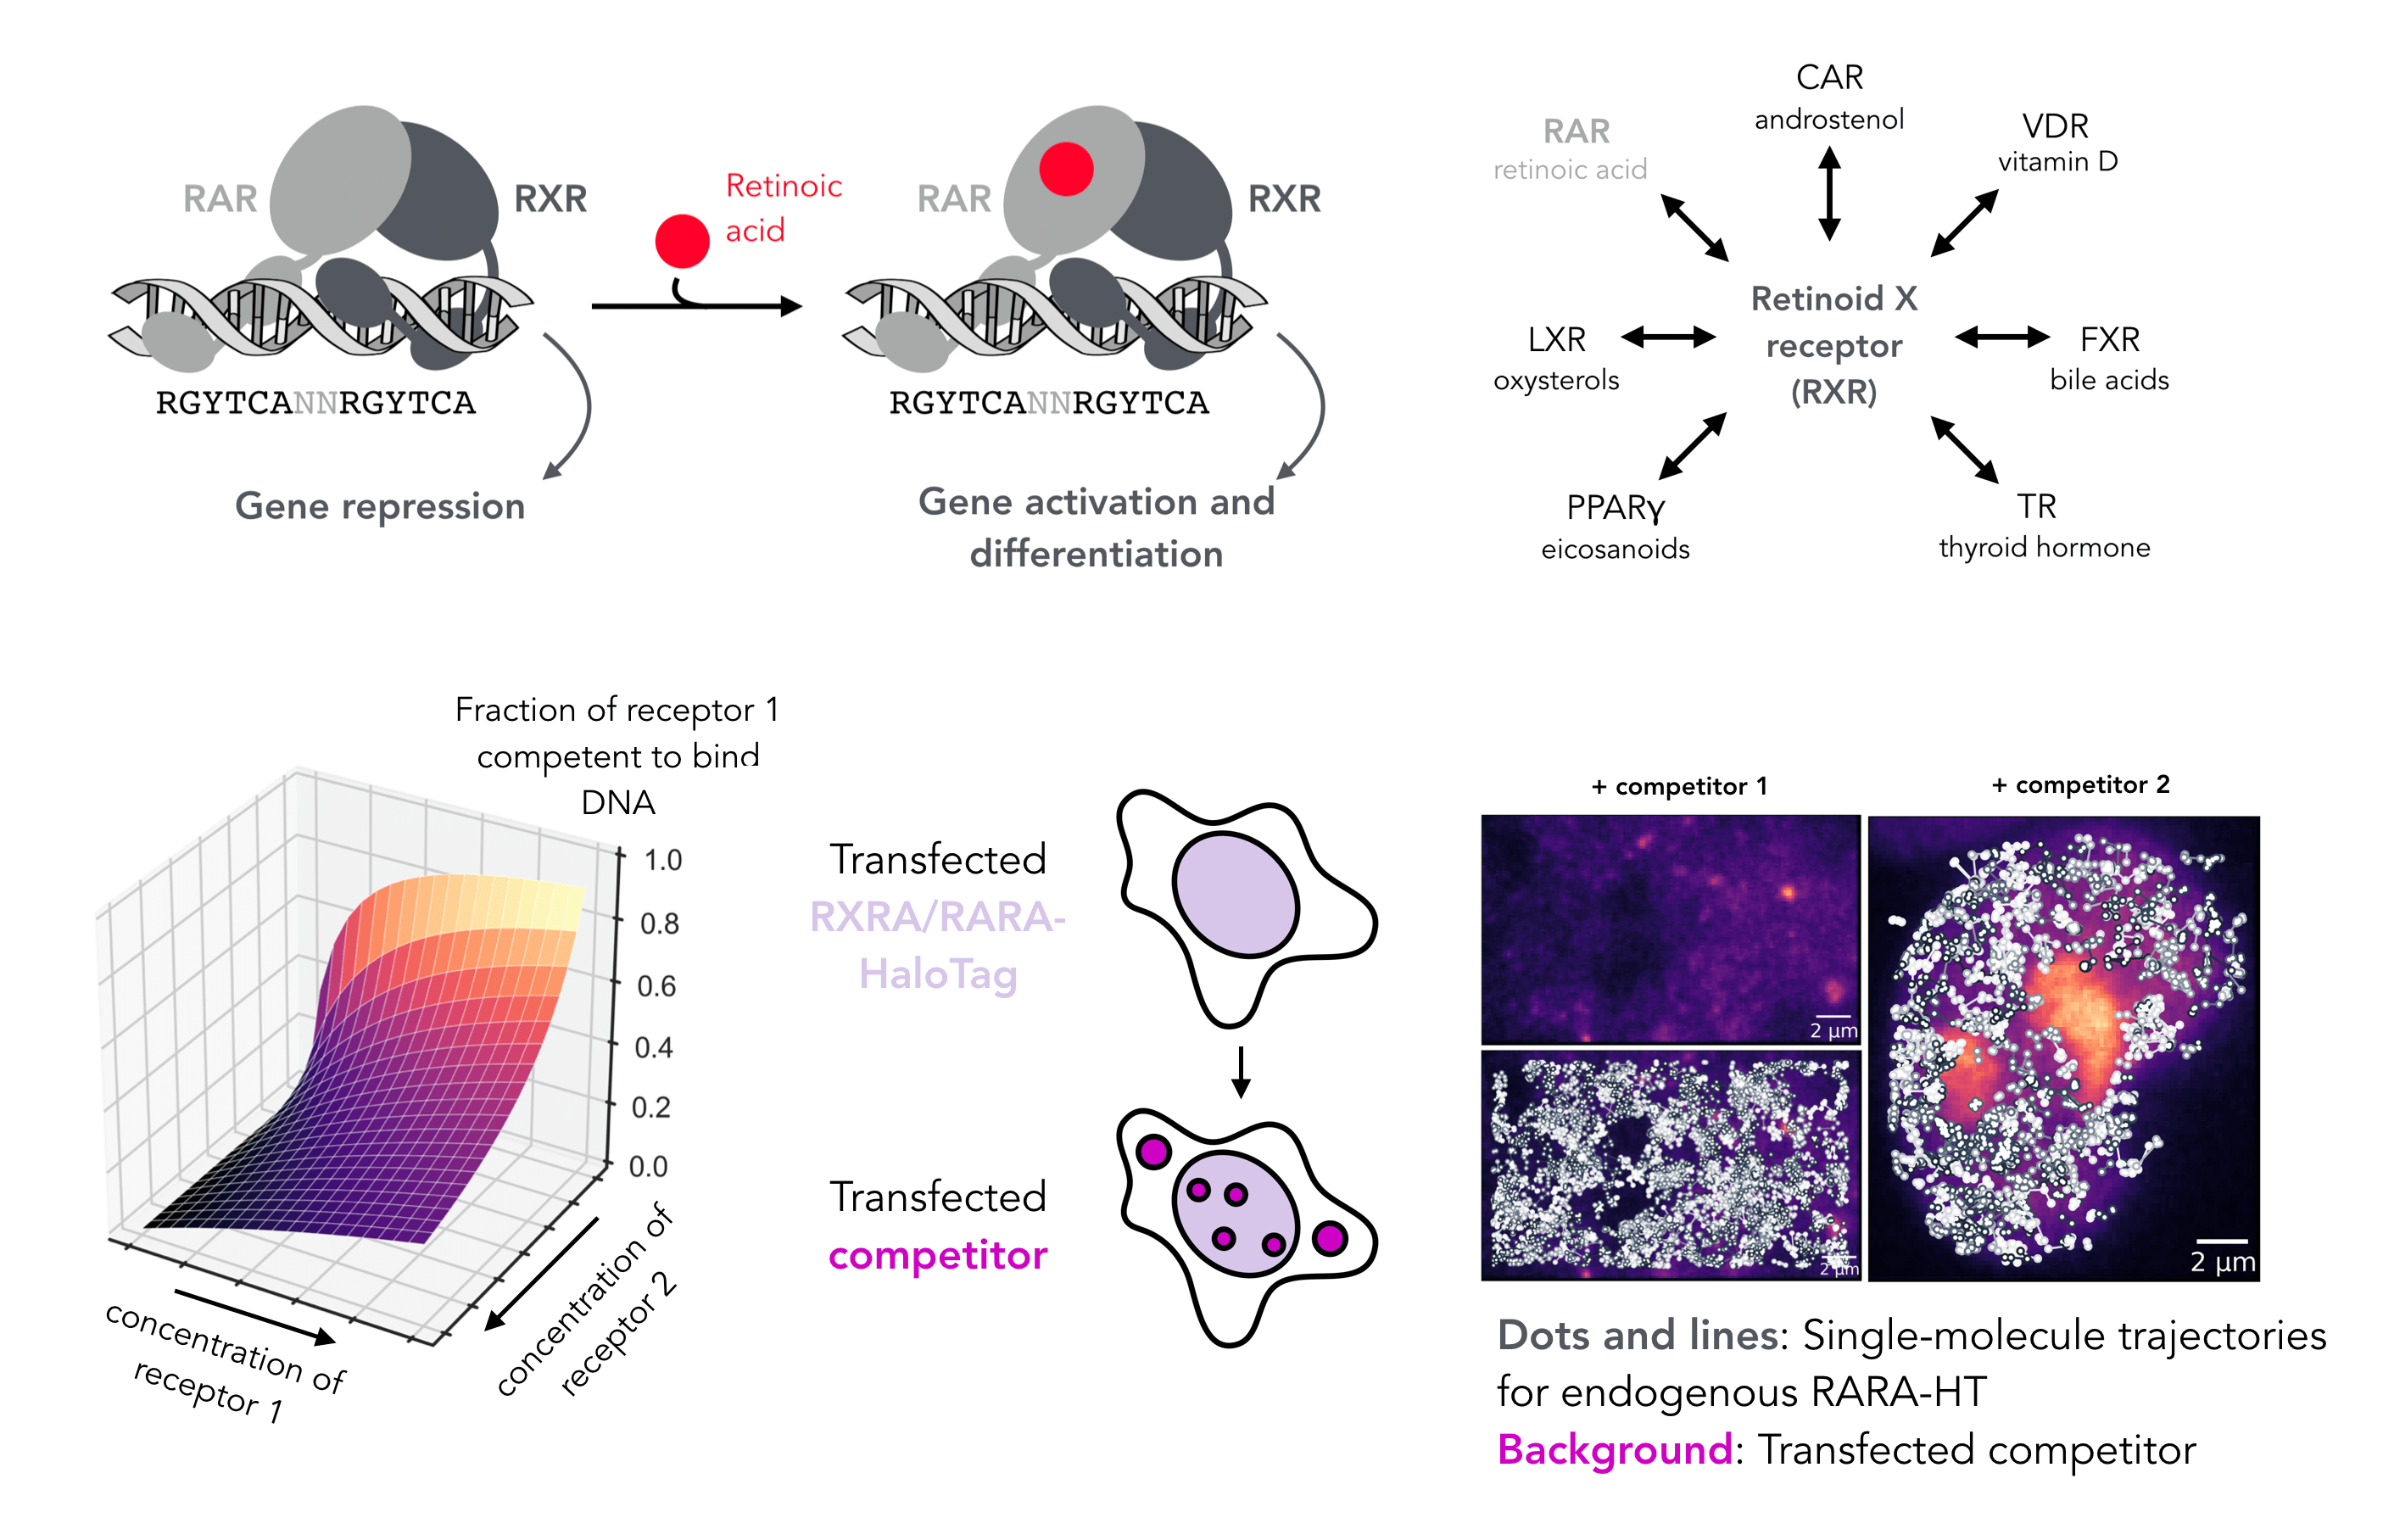 Competitive binding kinetics of type II nuclear receptors in live cells